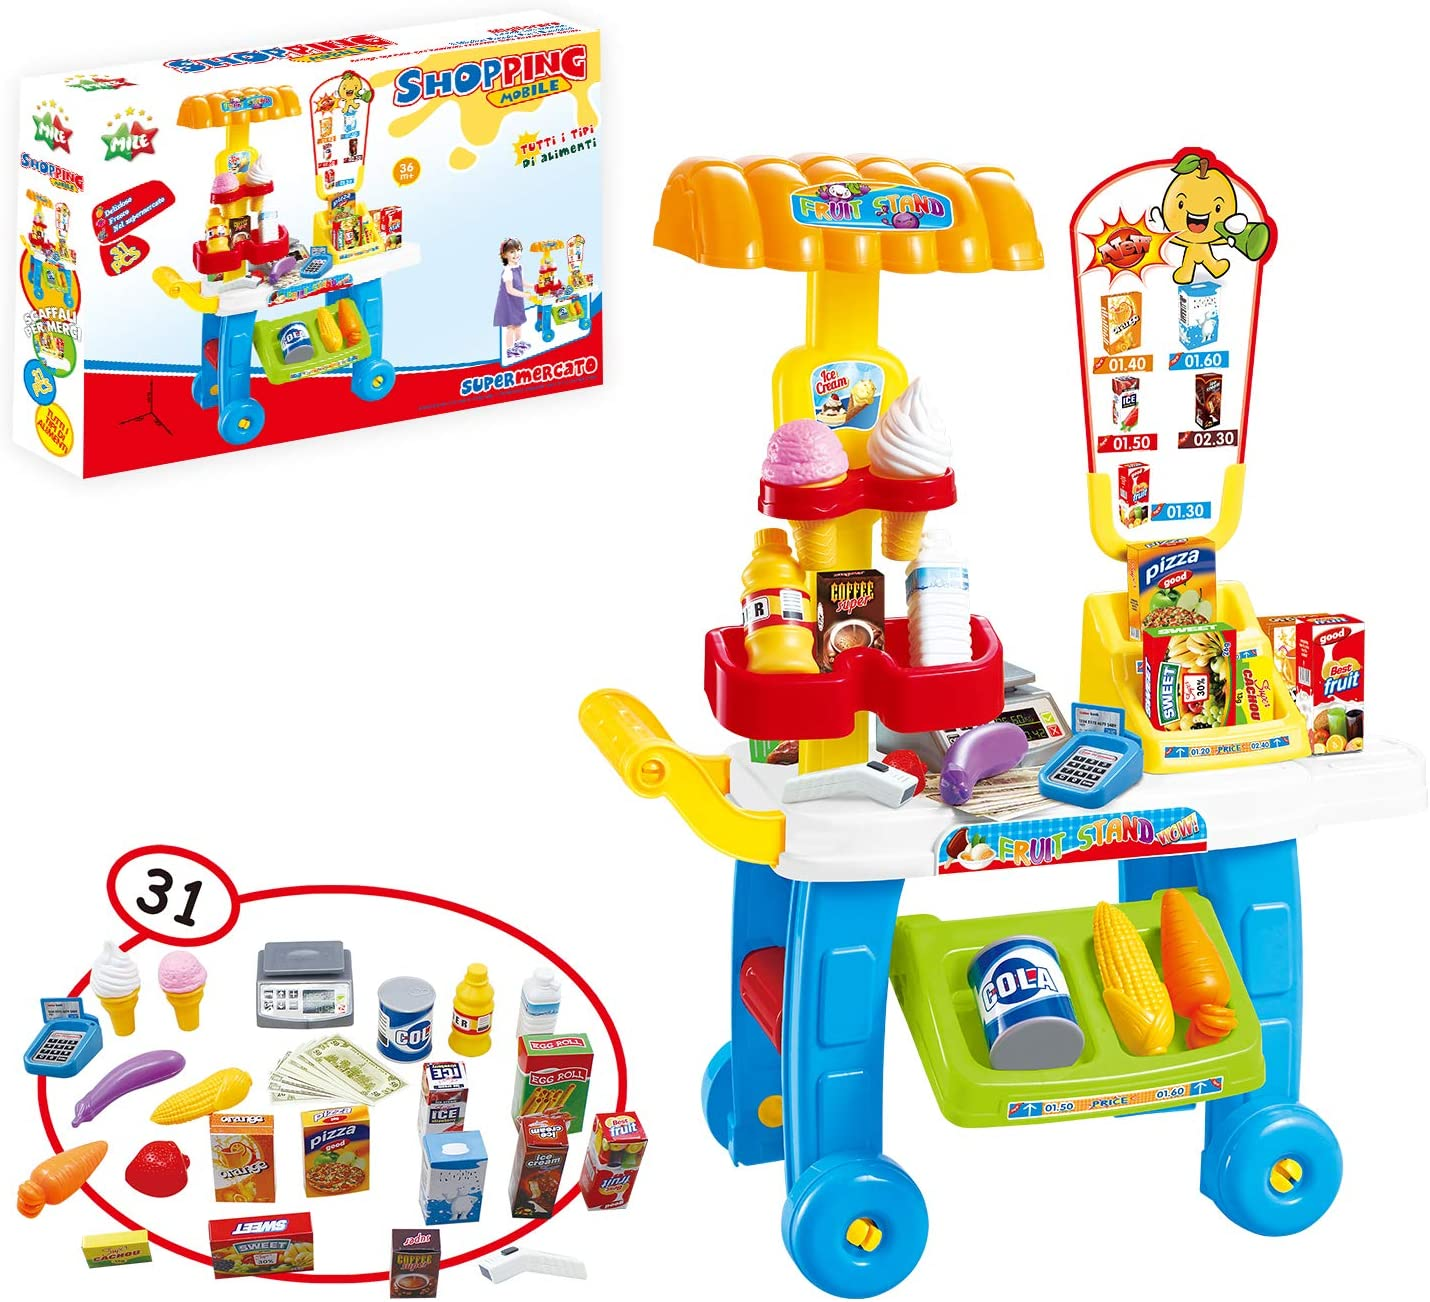 MILESTAR Kitchen Playset for Kids Pretend Play Toys Shopping Cart with Money Set & Food Items Grocery Store for Toddlers Girls and Boys Gift Idea